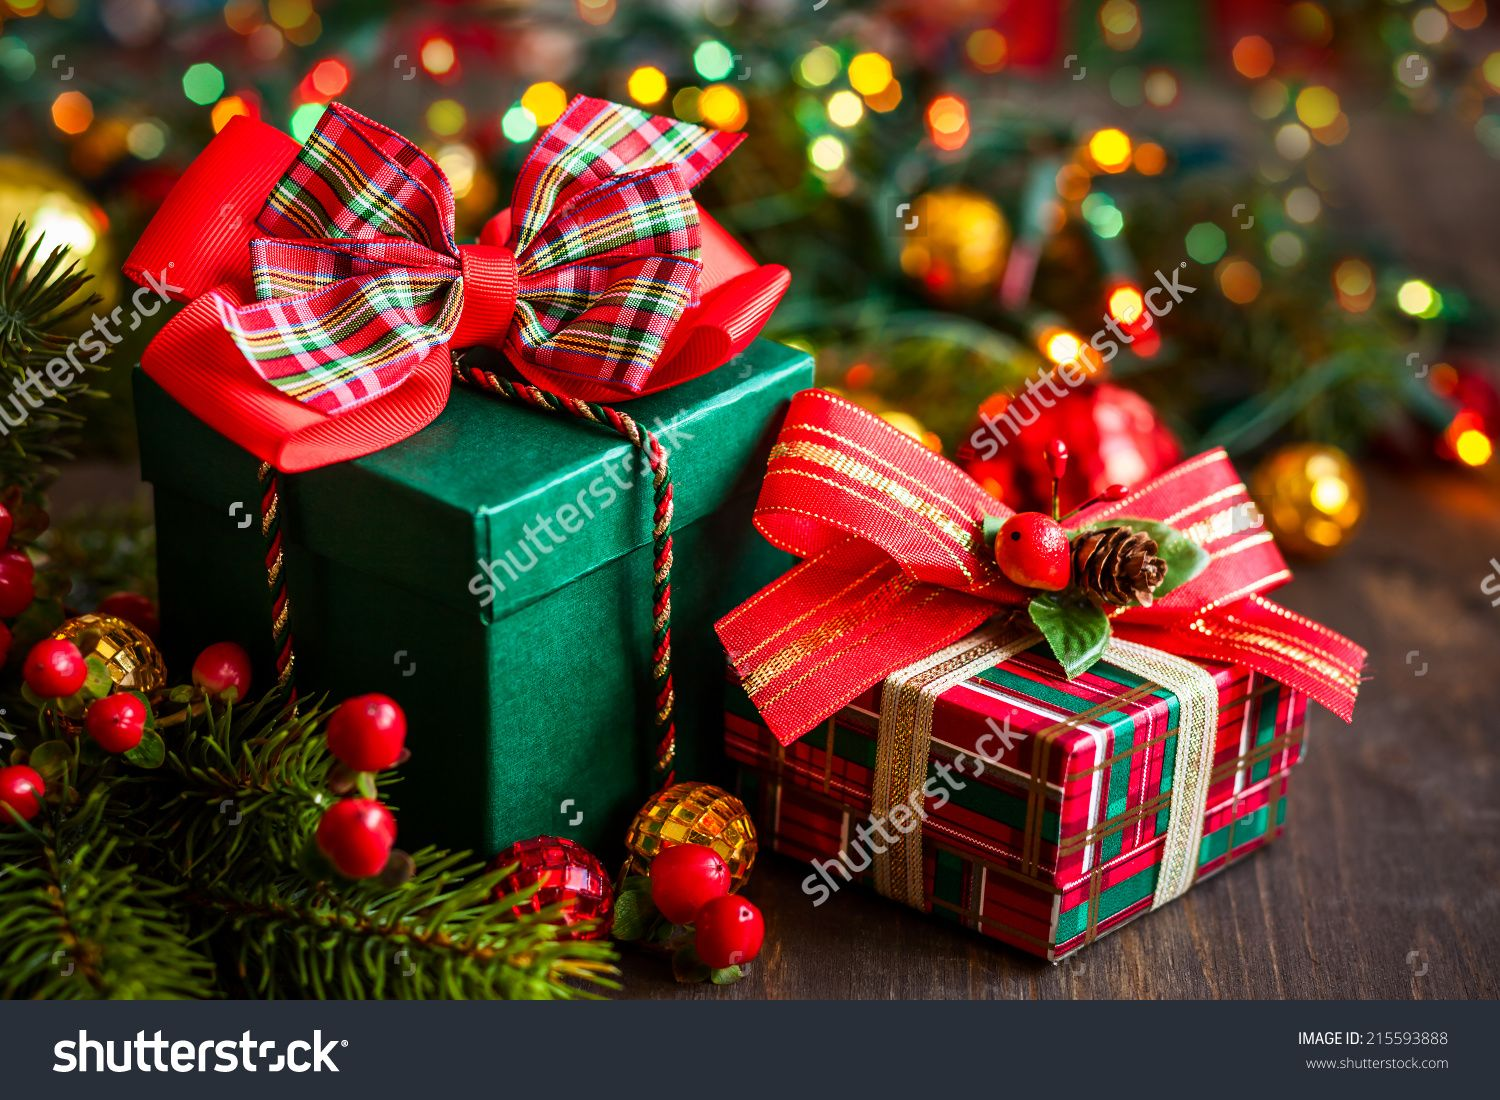 Christmas Gift Boxes With Decorations Foto Stock 215593888